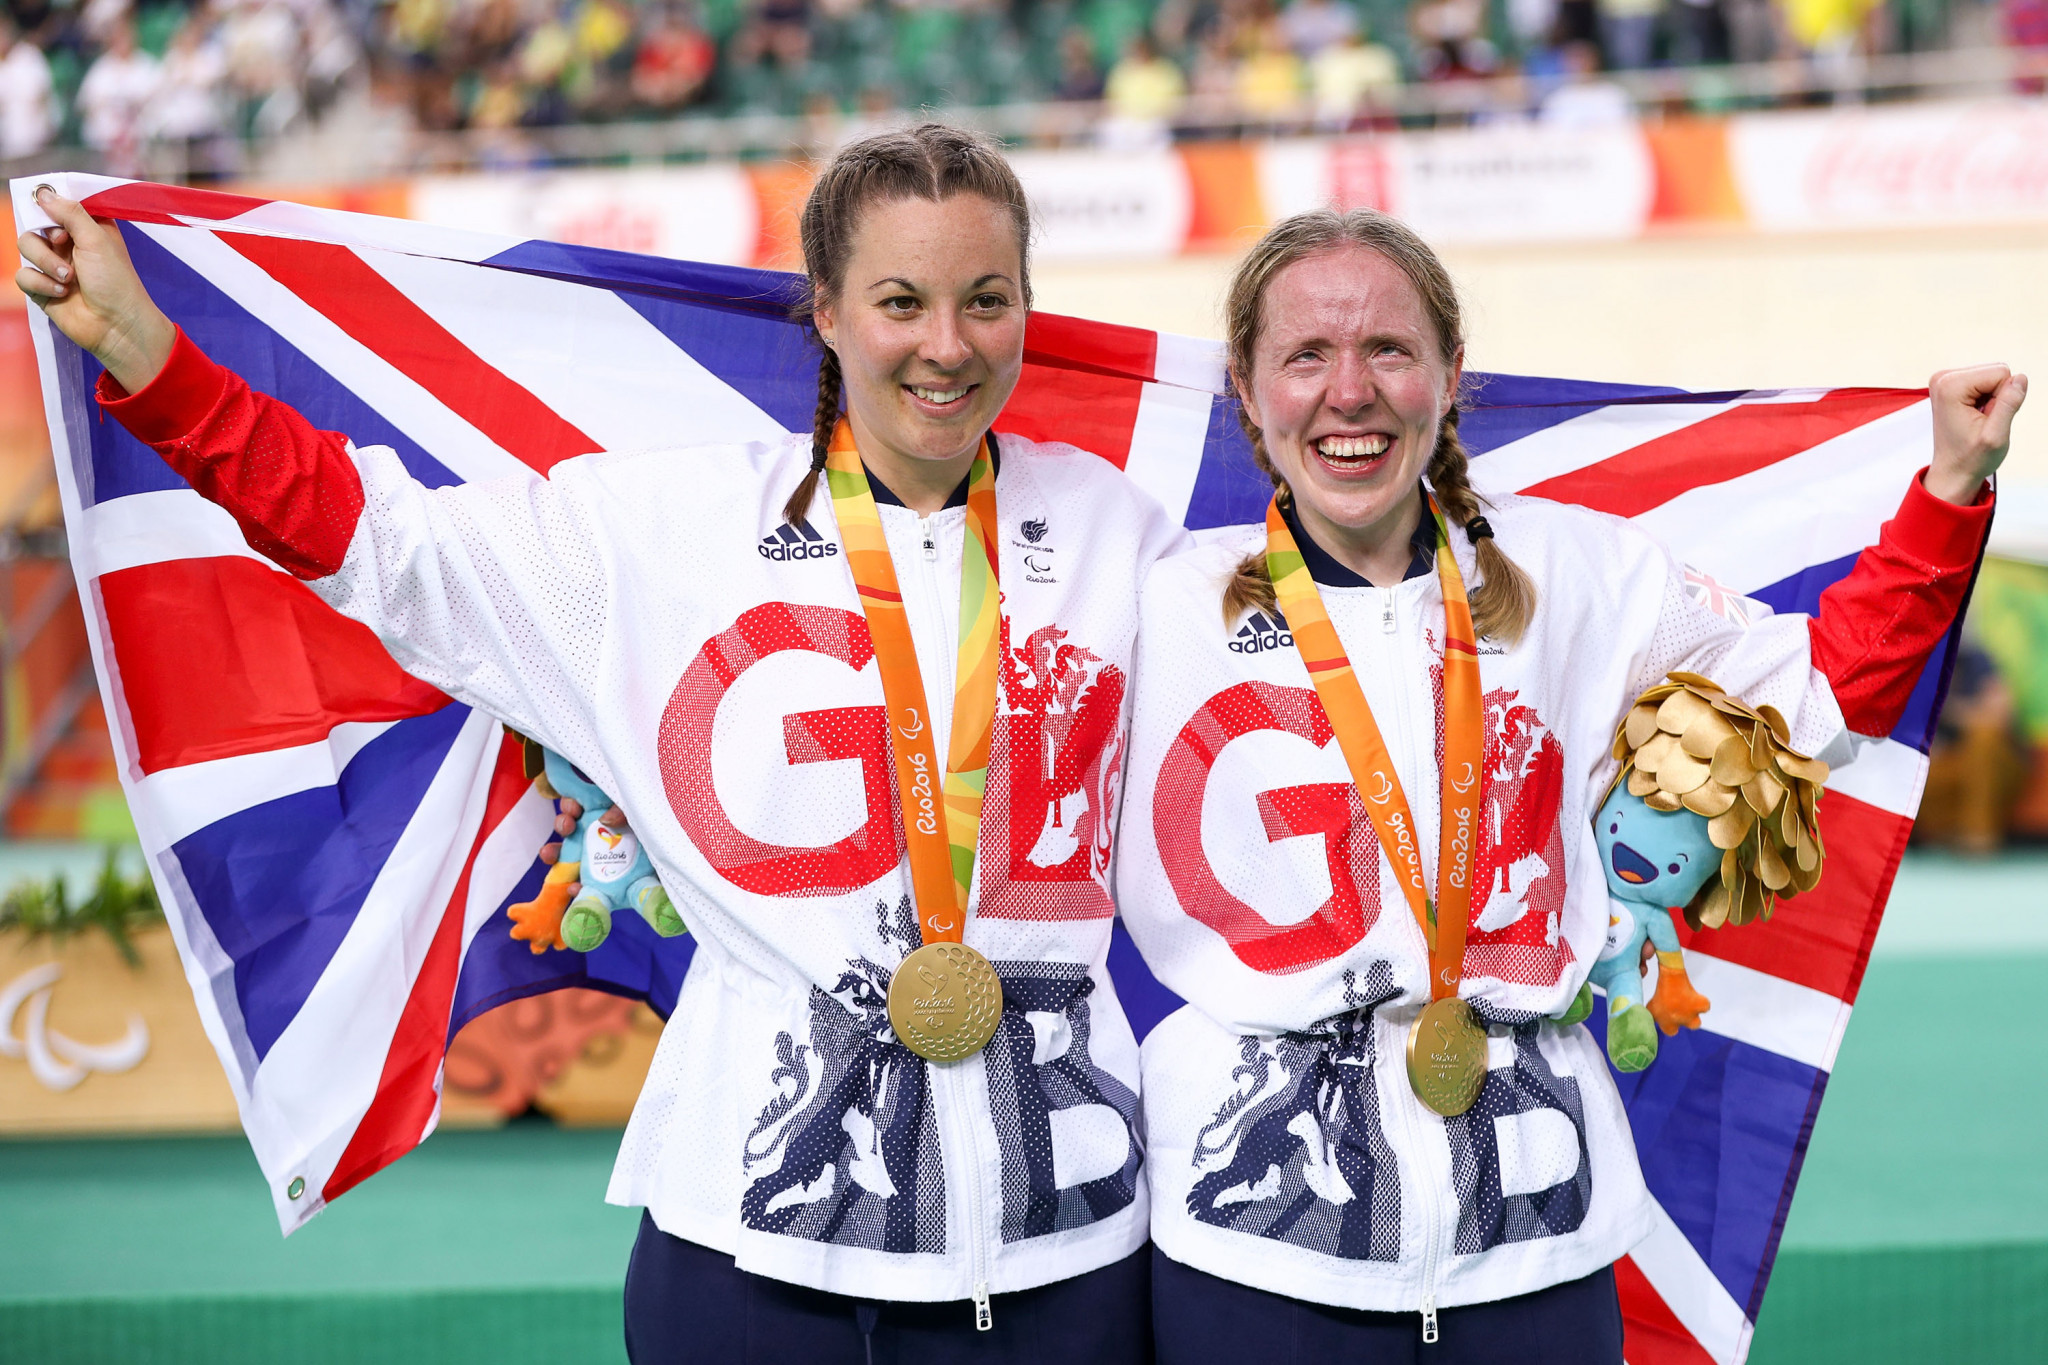 ParalympicsGB won a 147 medals, including 64 golds, at Rio 2016 to finish second overall ©Getty Images